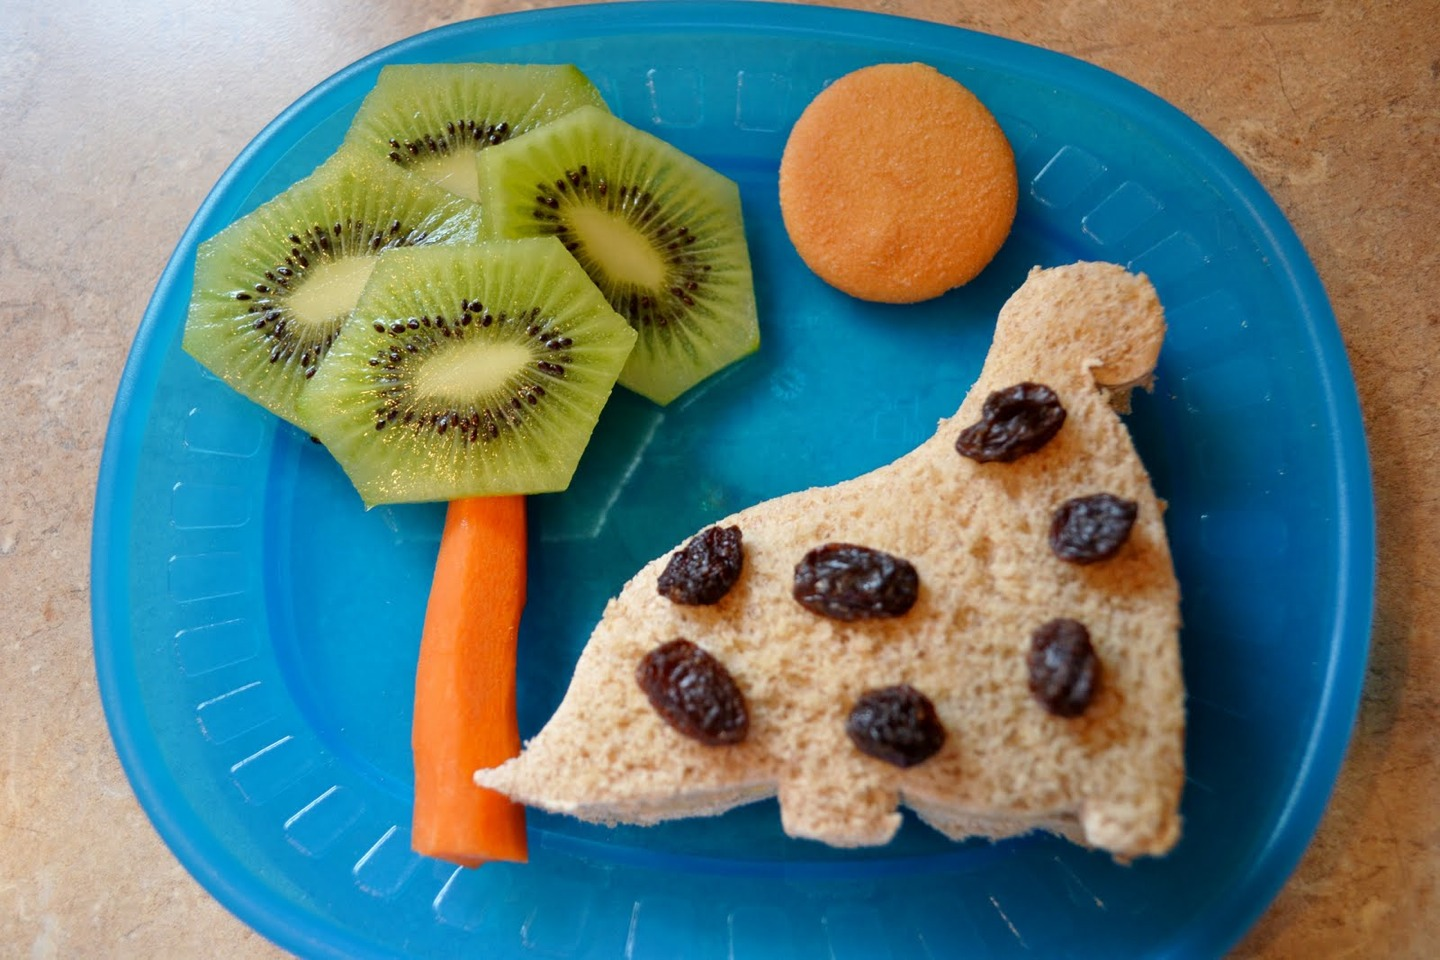 Cool food ideas for kids trusper for Cool food ideas for kids